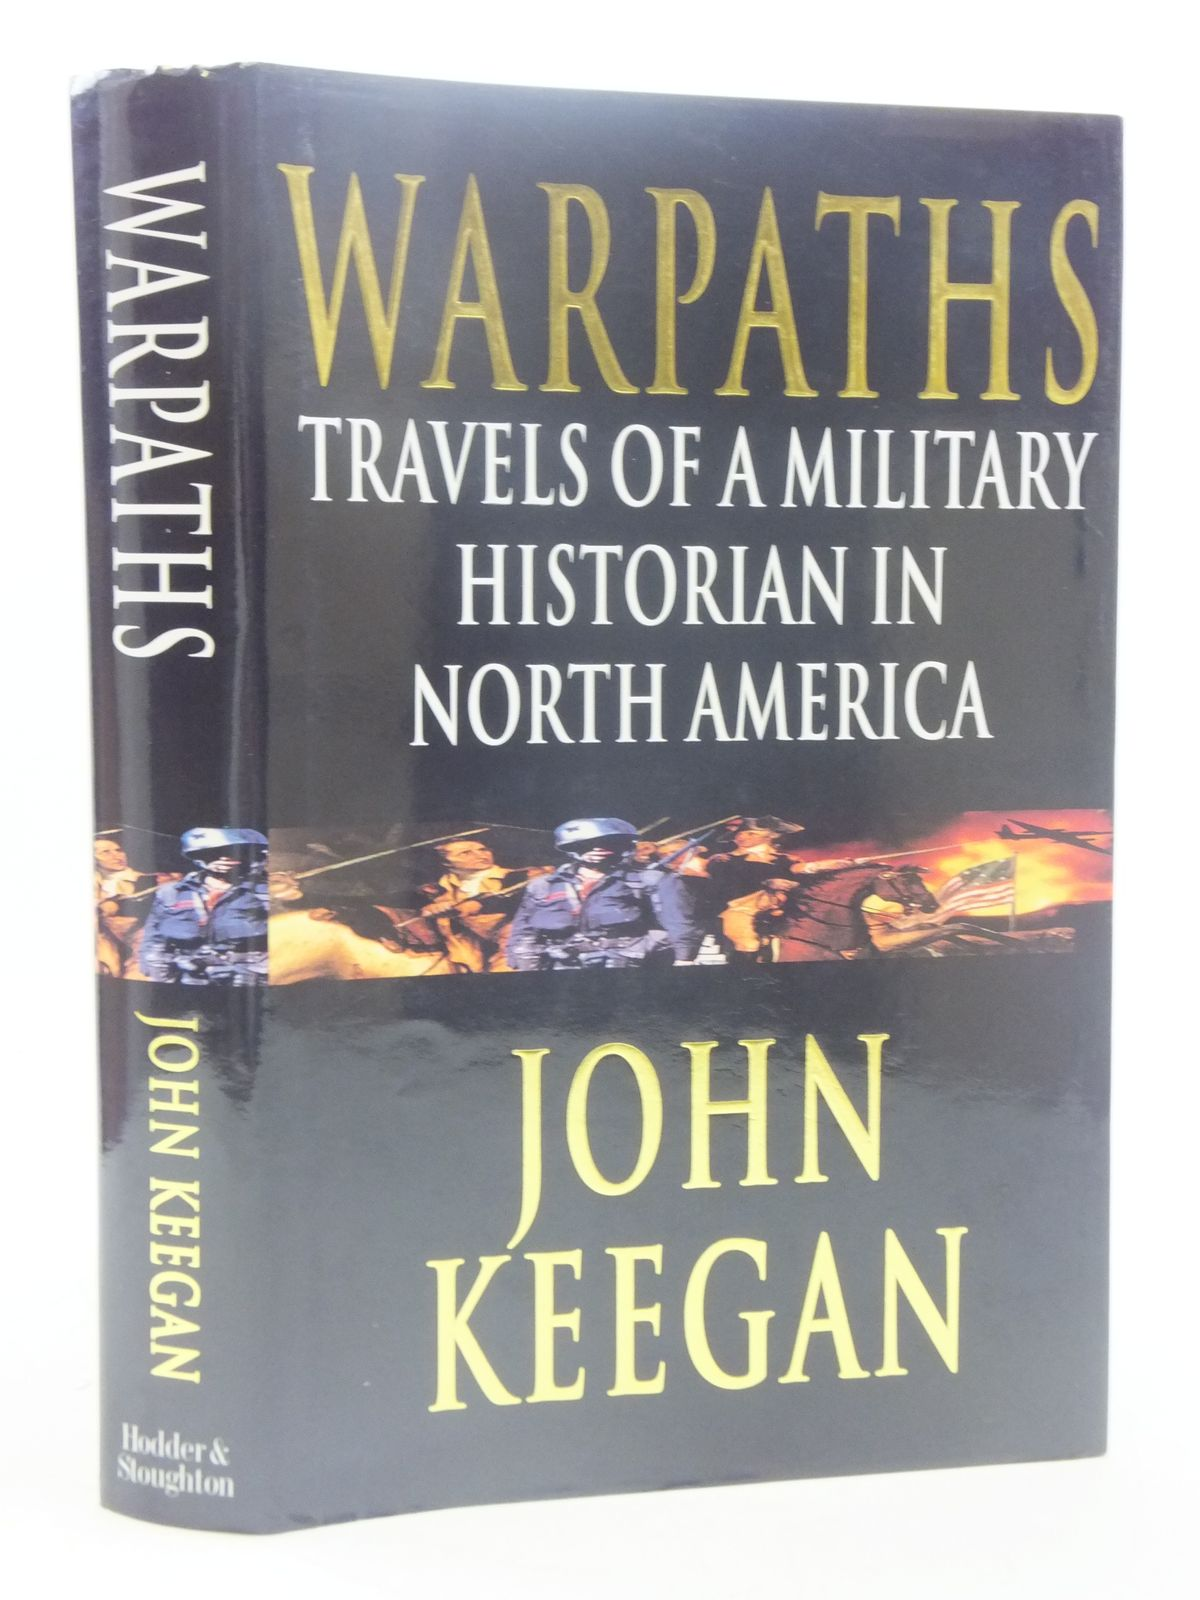 Photo of WARPATHS: TRAVELS OF A MILITARY HISTORIAN IN NORTH AMERICA written by Keegan, John published by Hodder & Stoughton (STOCK CODE: 1605145)  for sale by Stella & Rose's Books